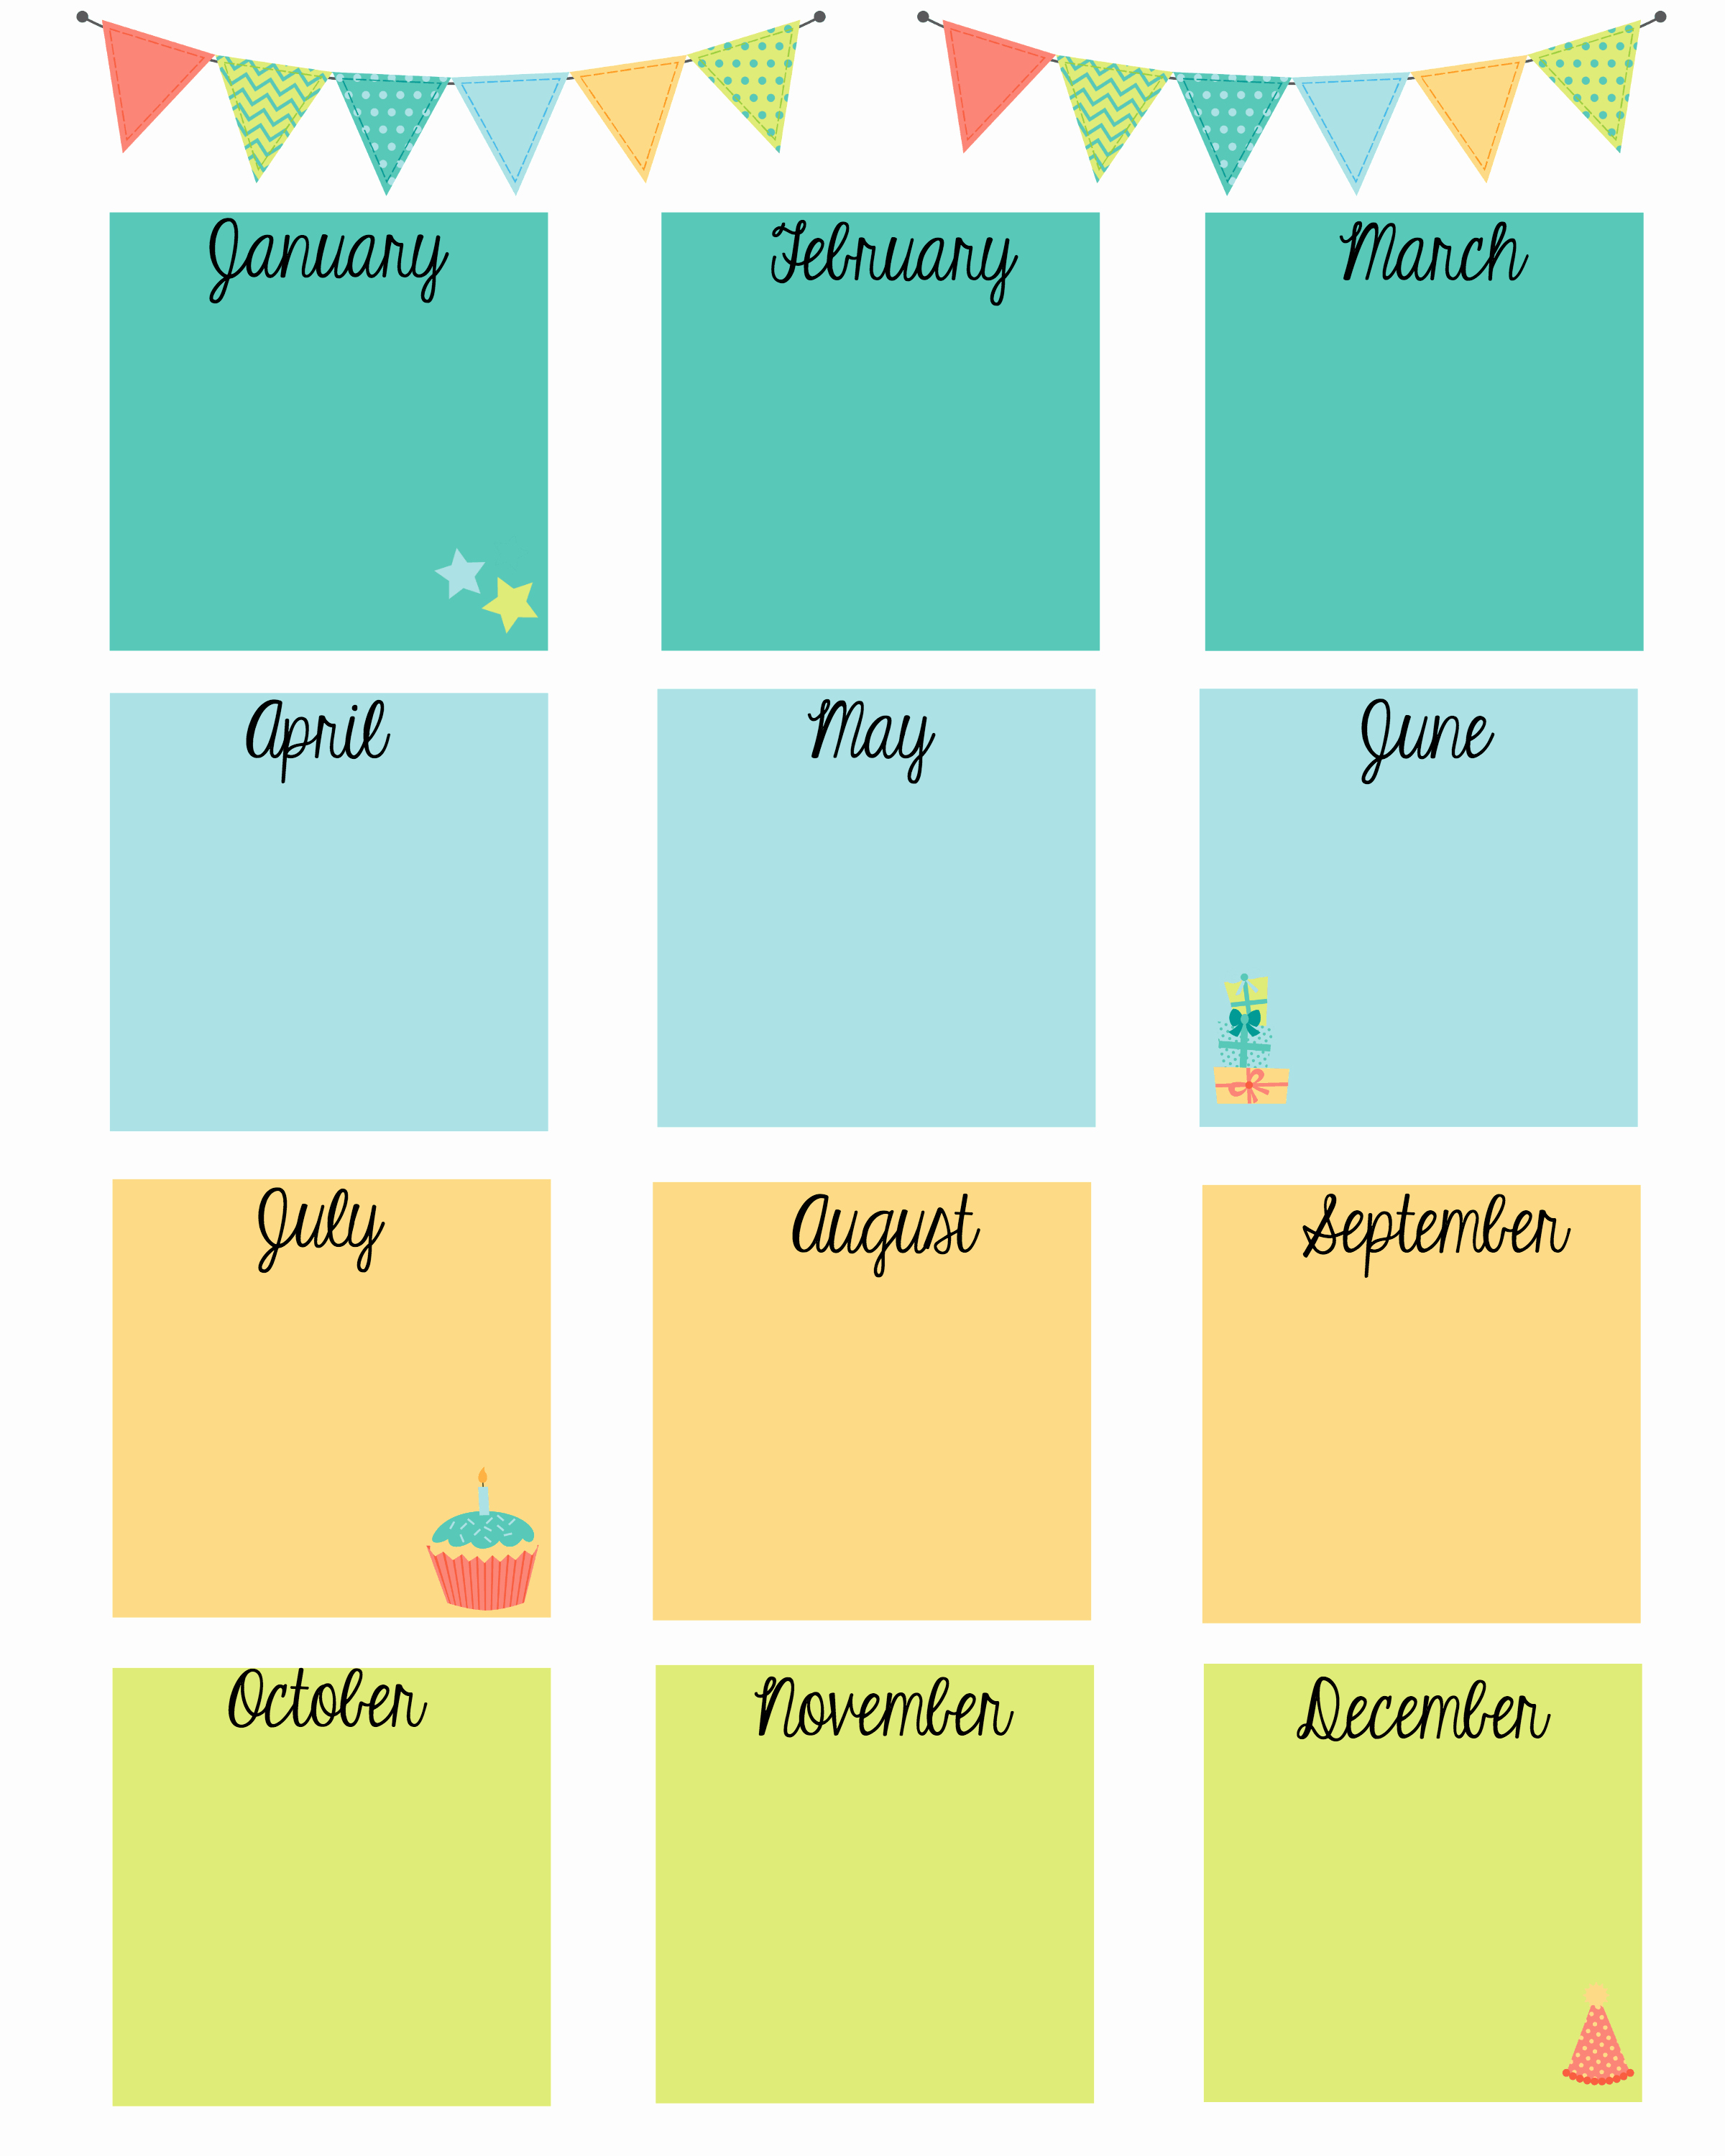 Birthday and Anniversary Calendar Template Lovely Keep In touch with Friends with A Birthday Calendar